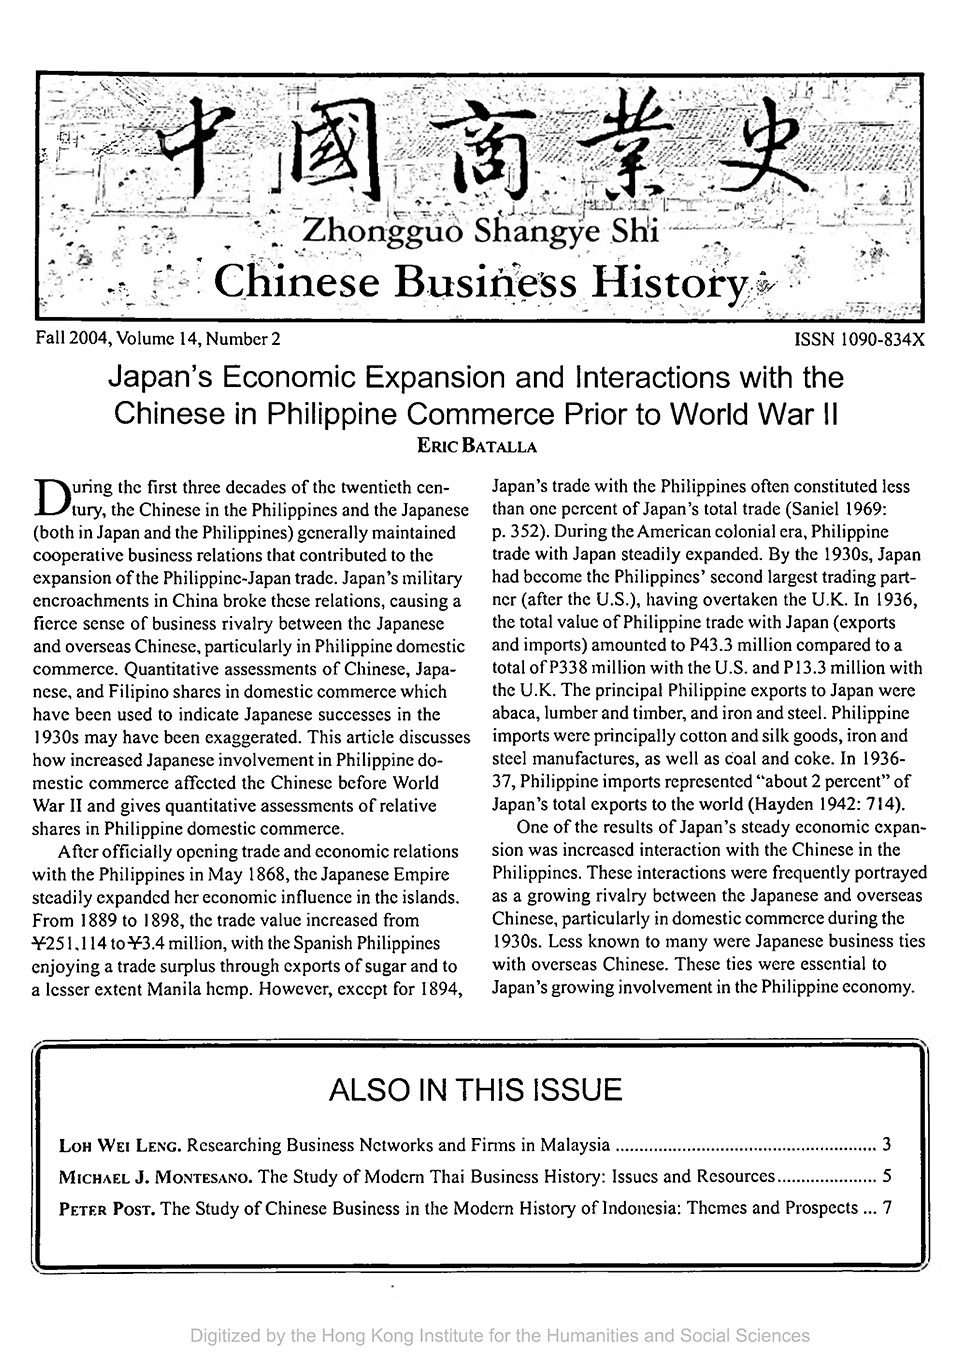 Cover of Chinese Business History Journal Volume 14, Number 2